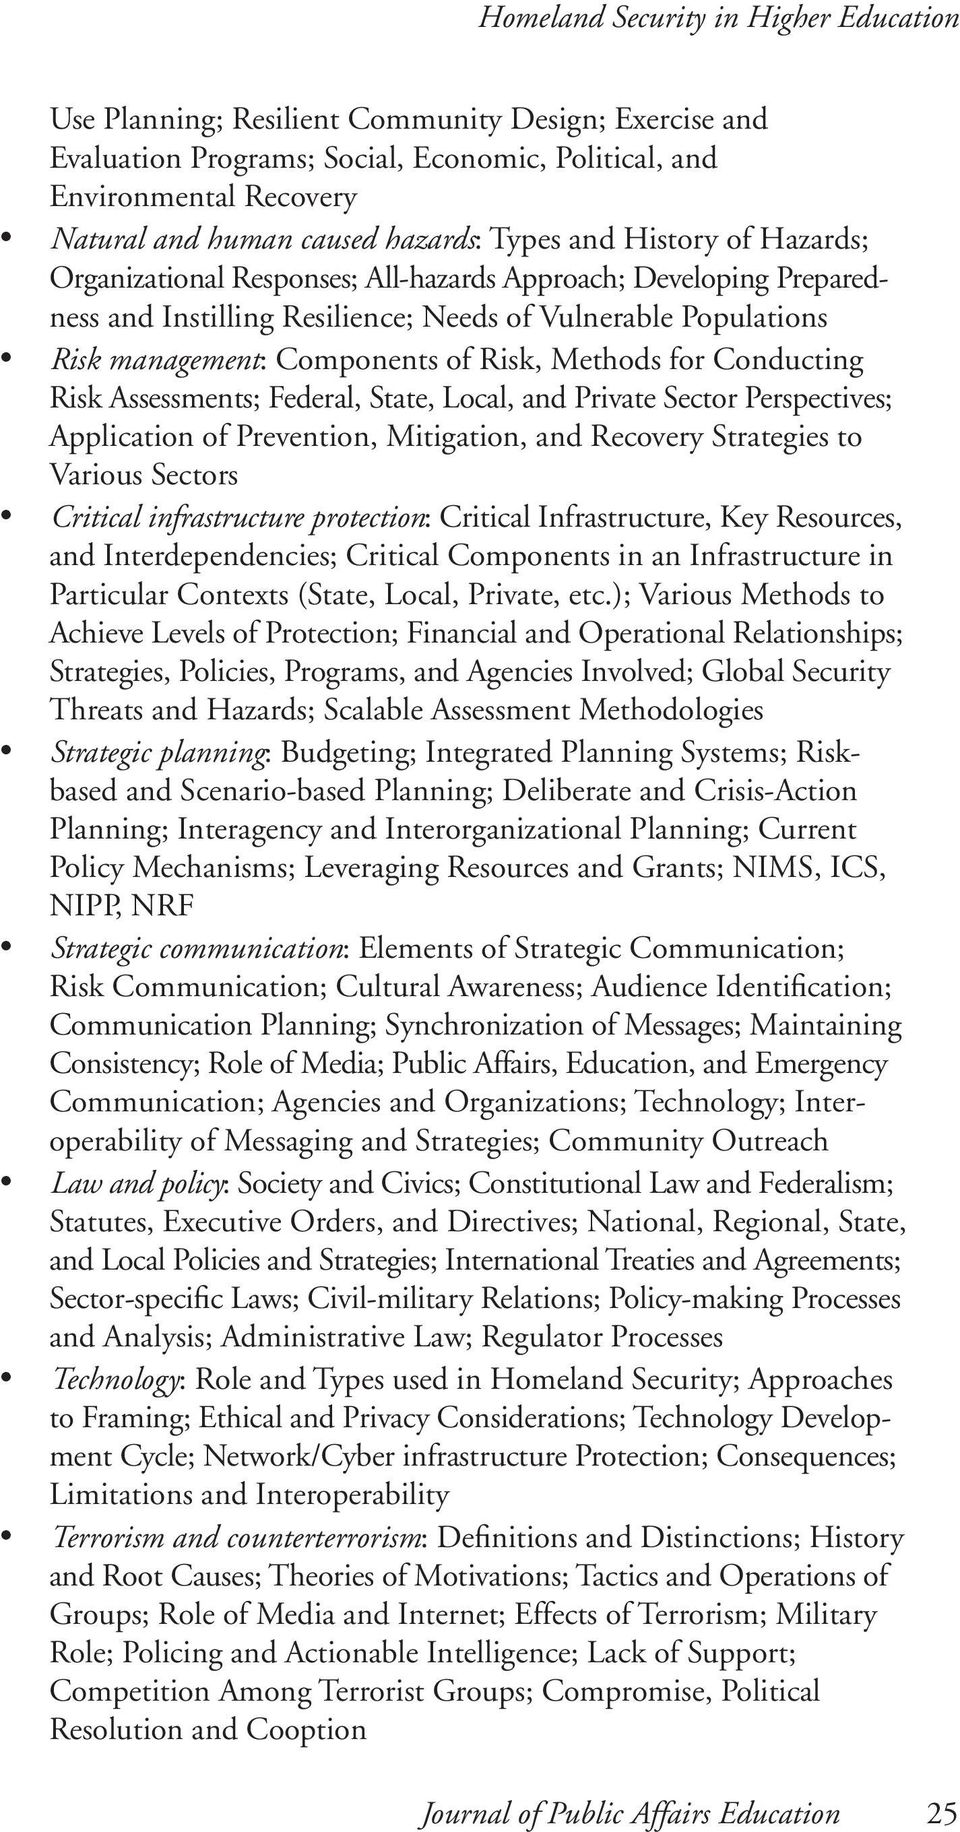 of Risk, Methods for Conducting Risk Assessments; Federal, State, Local, and Private Sector Perspectives; Application of Prevention, Mitigation, and Recovery Strategies to Various Sectors Critical